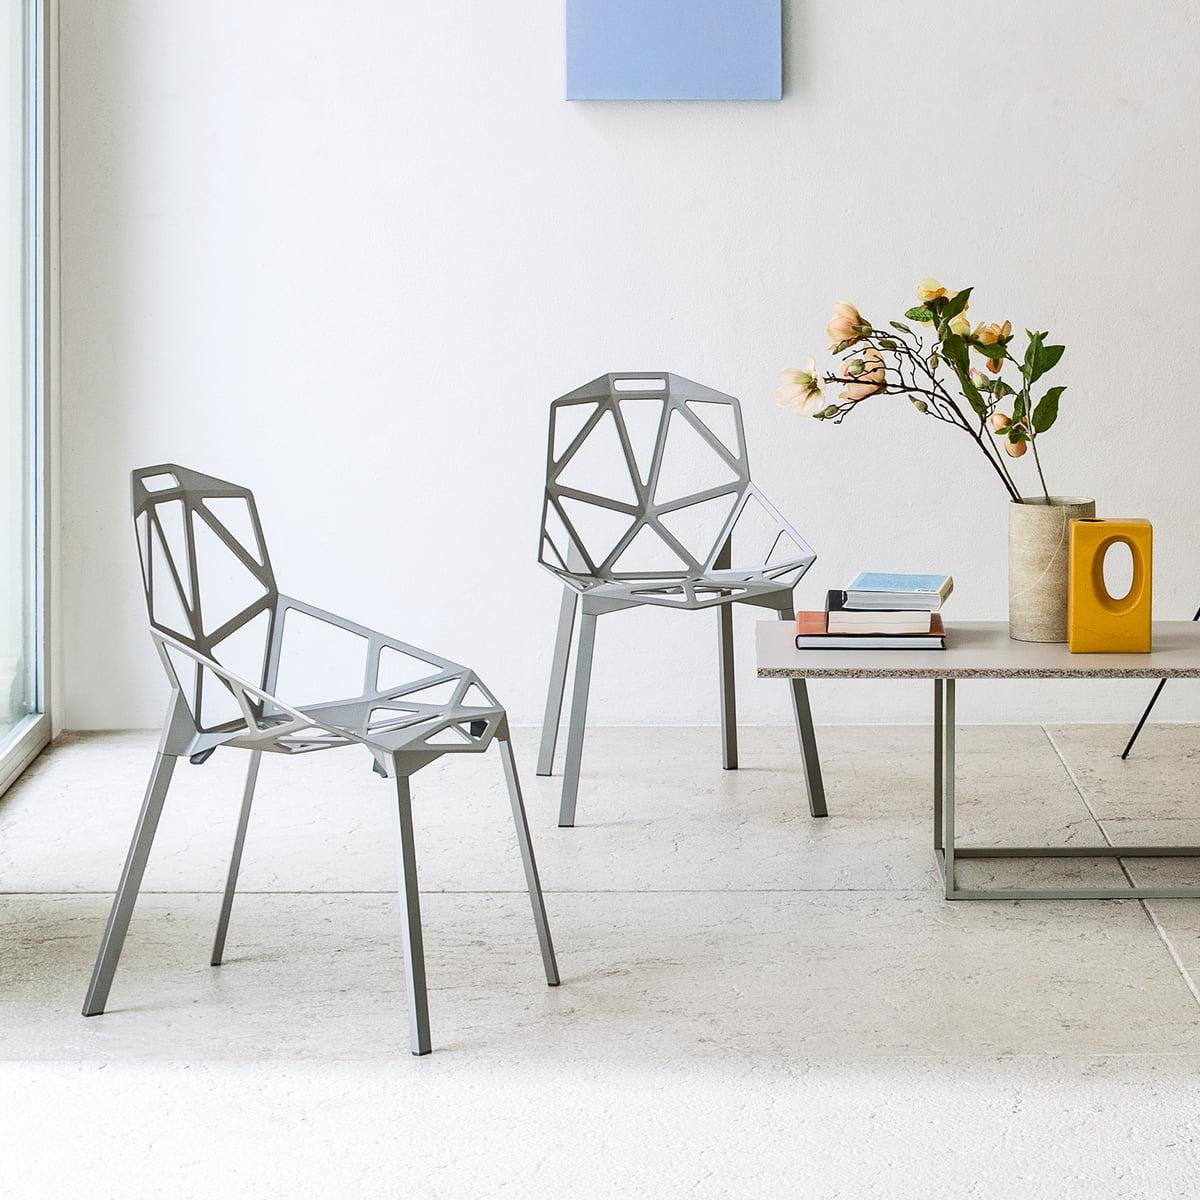 Polished Anodized Aluminum Stackable Konstantin Grcic Magis Chair One Chair 5